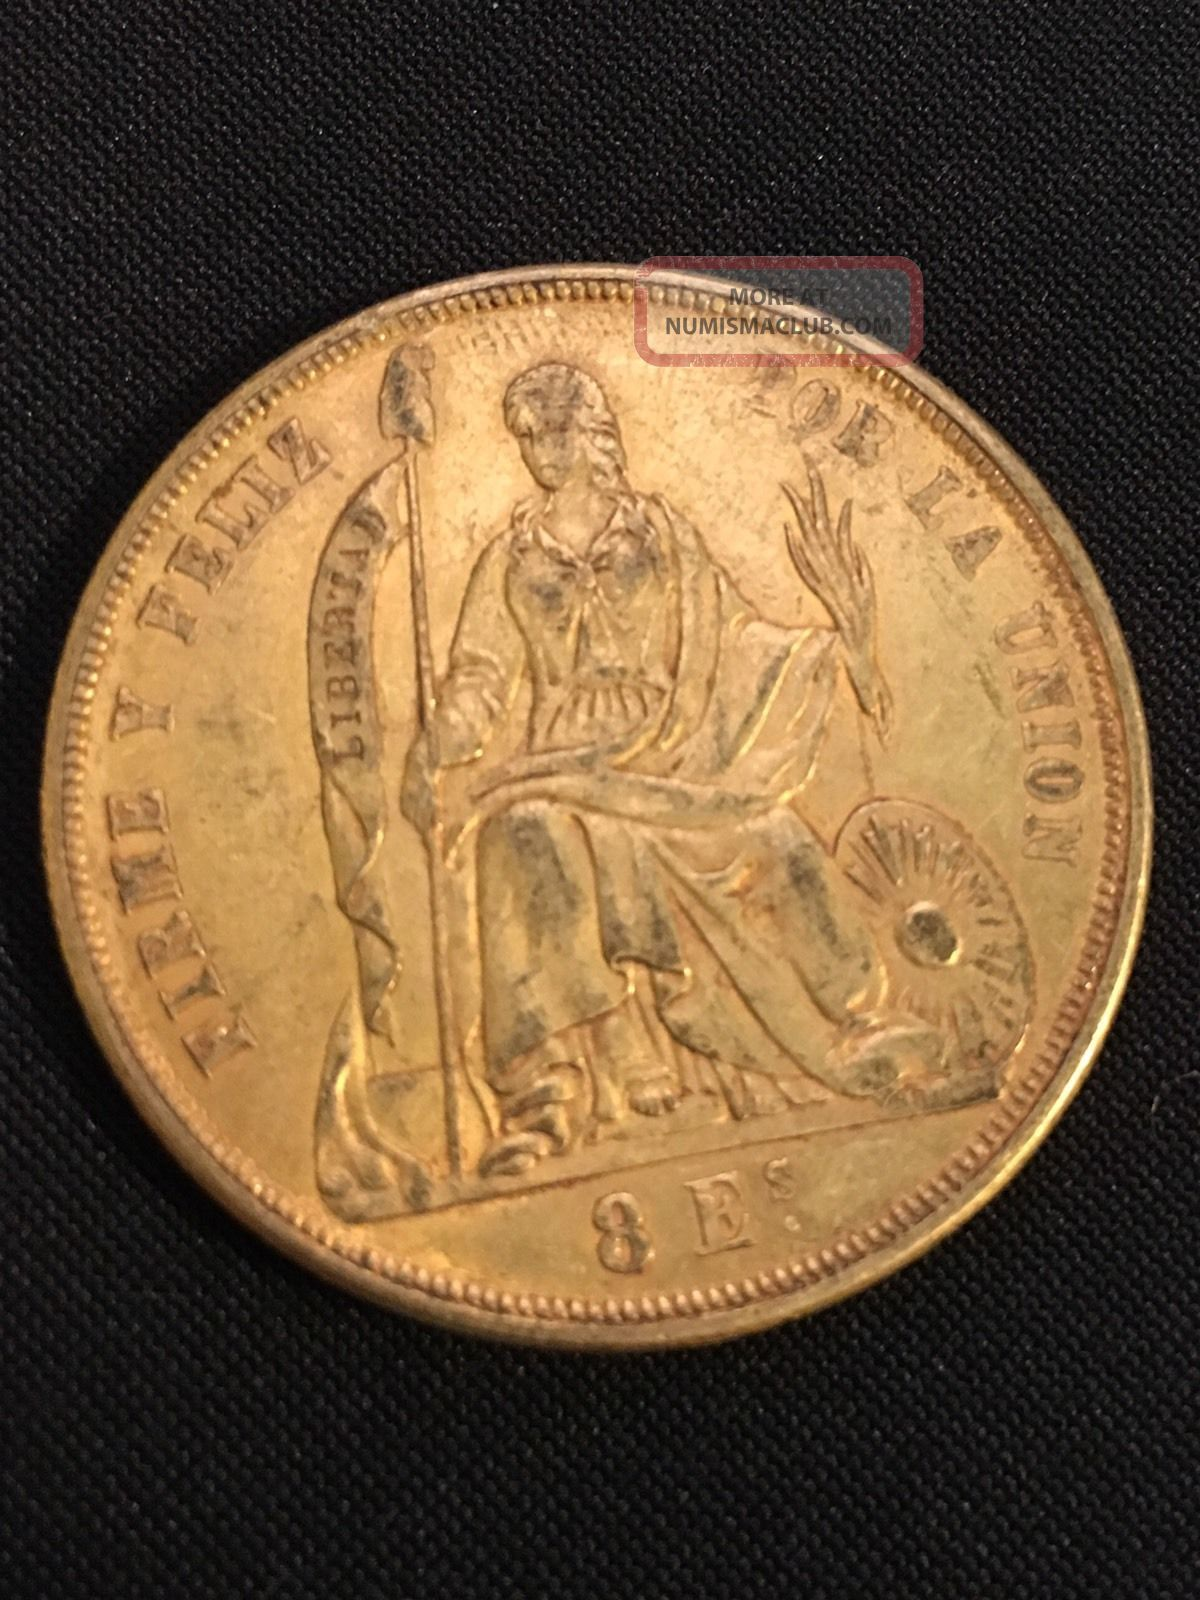 1863 Gold 8 Escudos Peru,  Very Scarce,  27 Grams Coins: World photo